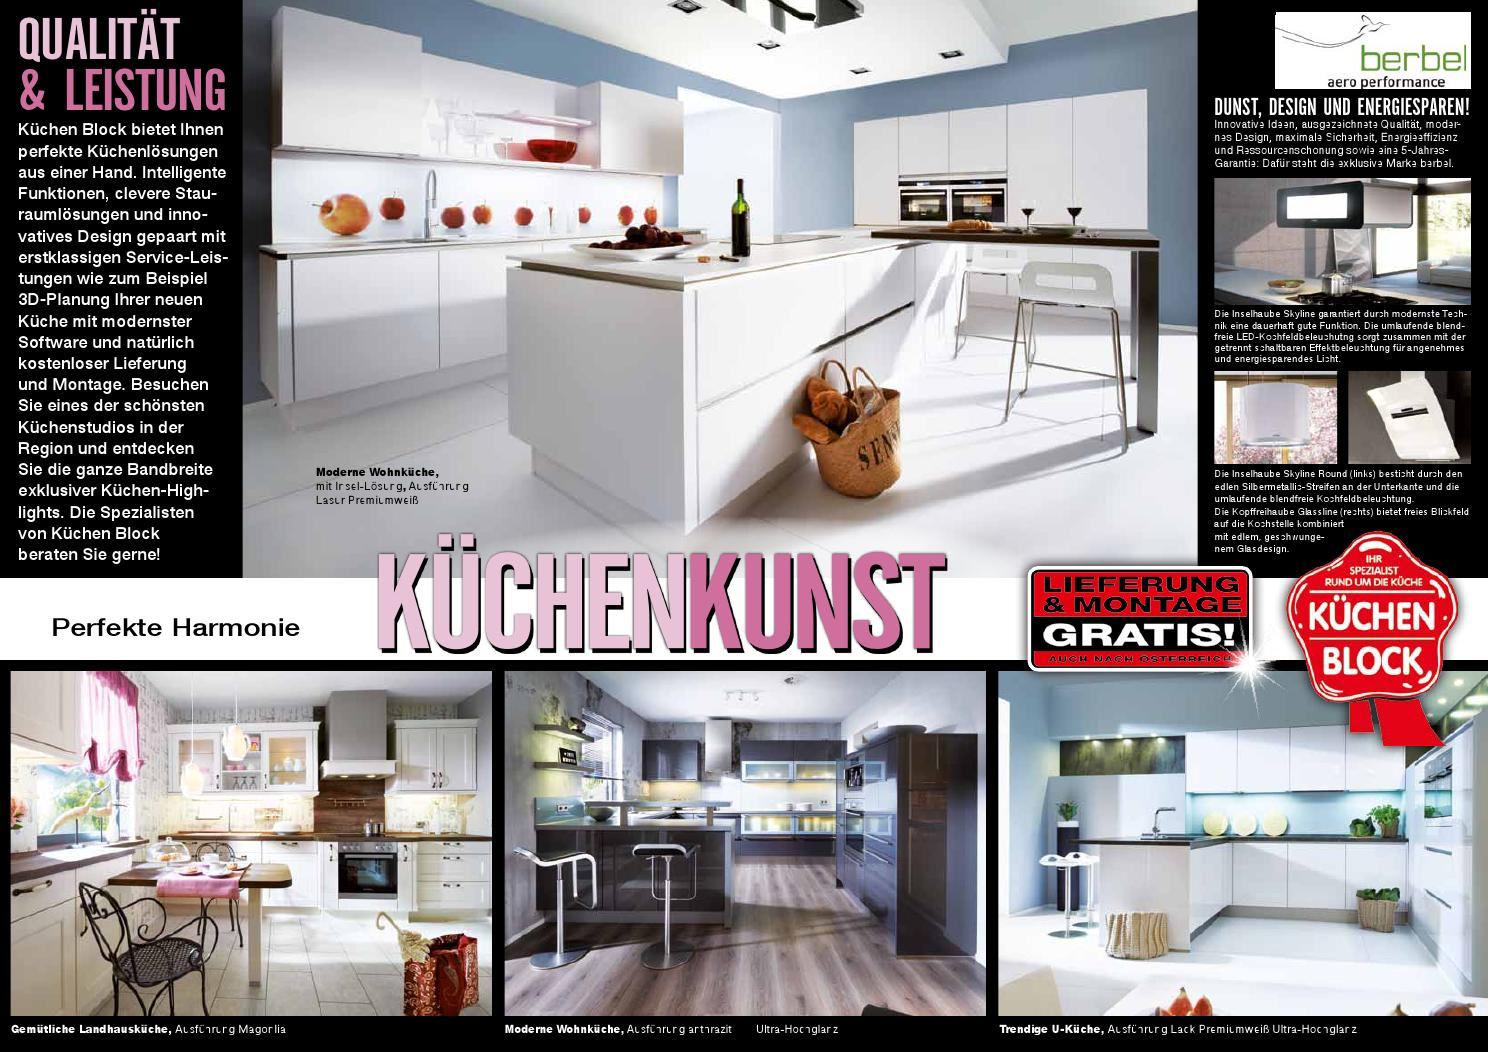 Moebelblock Kw31 By Russmedia Digital GmbH   Issuu